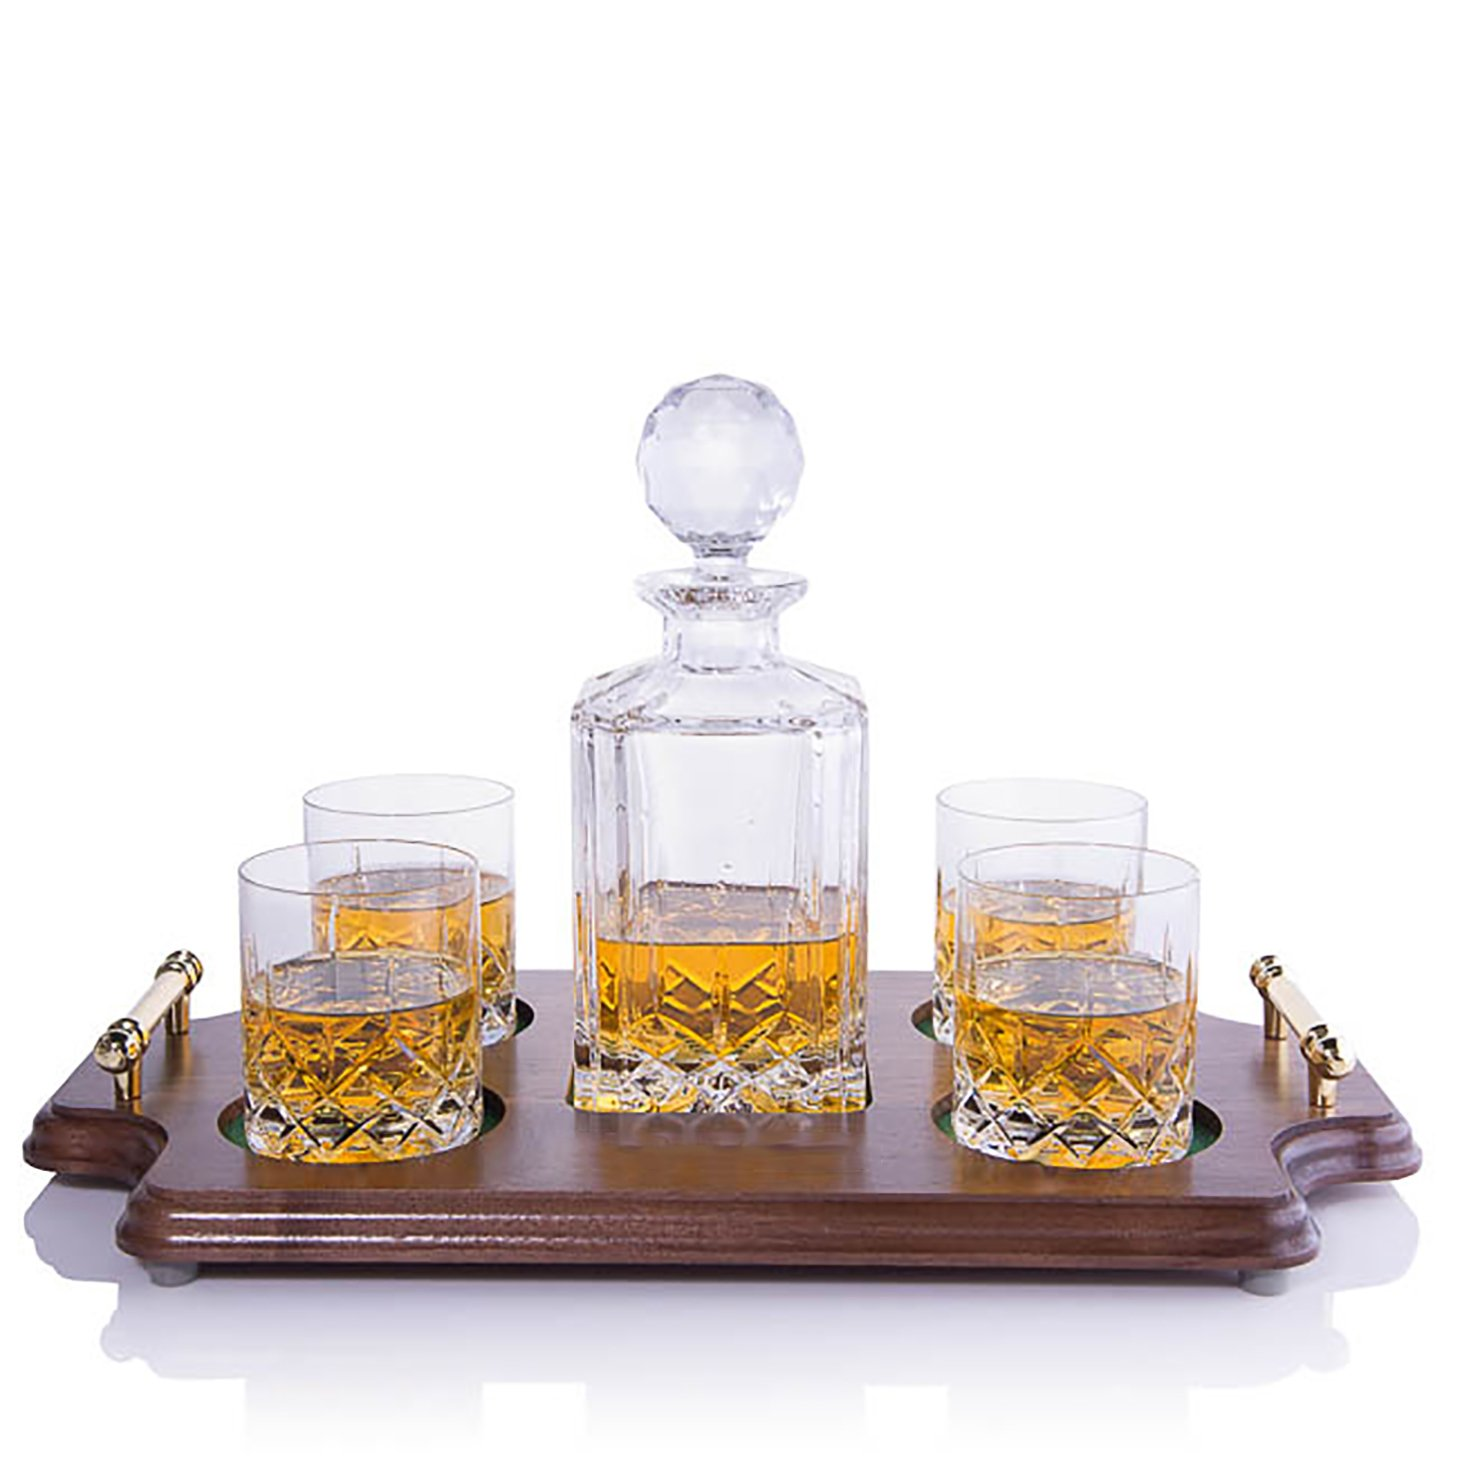 Crystalize Cut Crystal Whiskey Decanter and Glass Set with Wood Tray